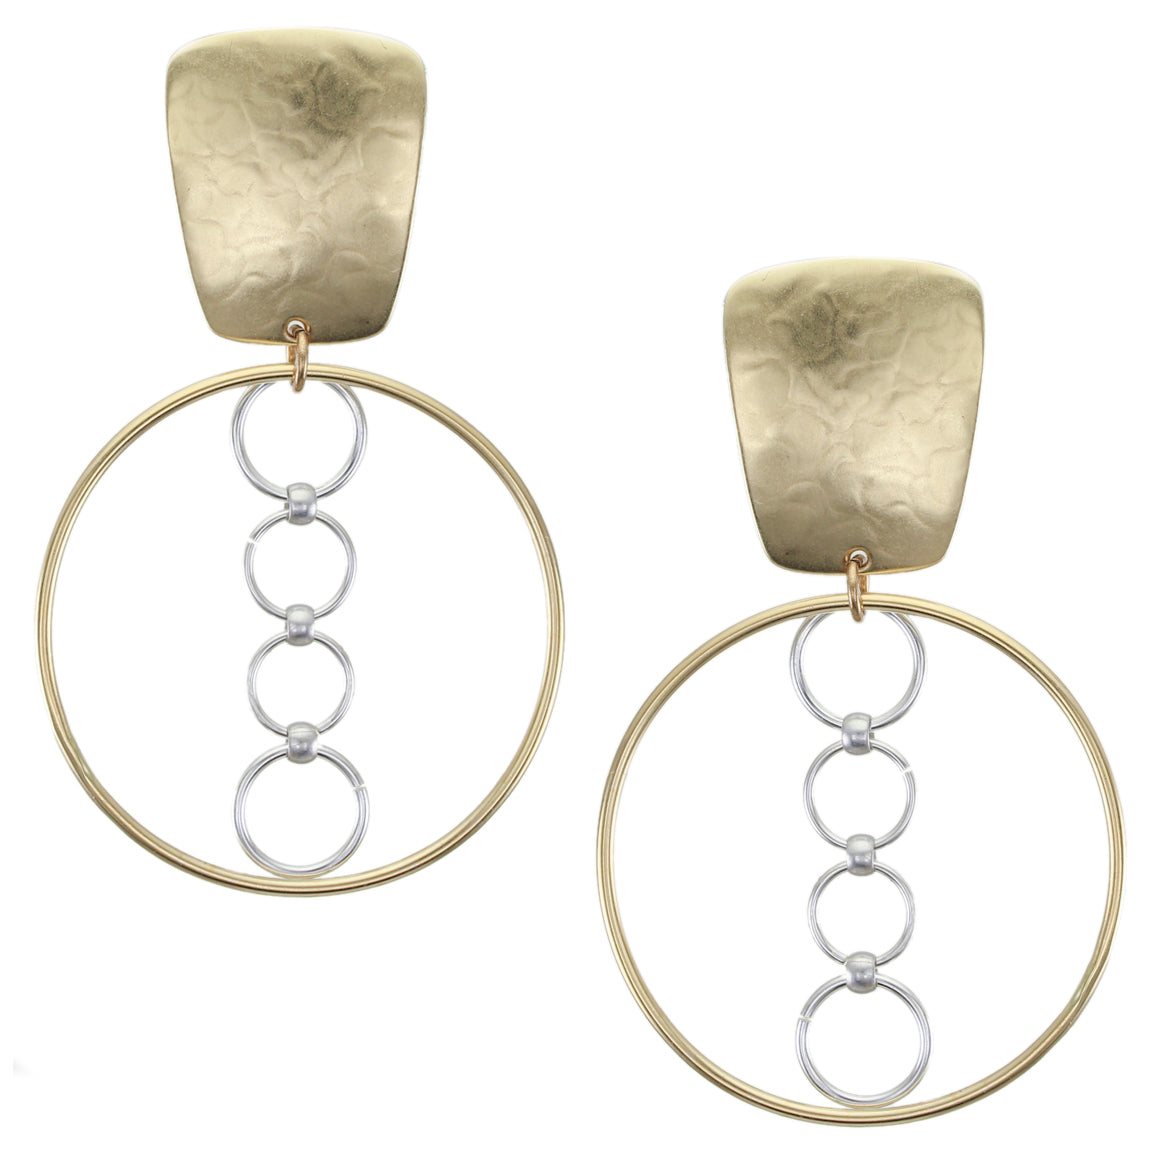 Tapered Rectangle with Large Hoop and Rings Clip Earring